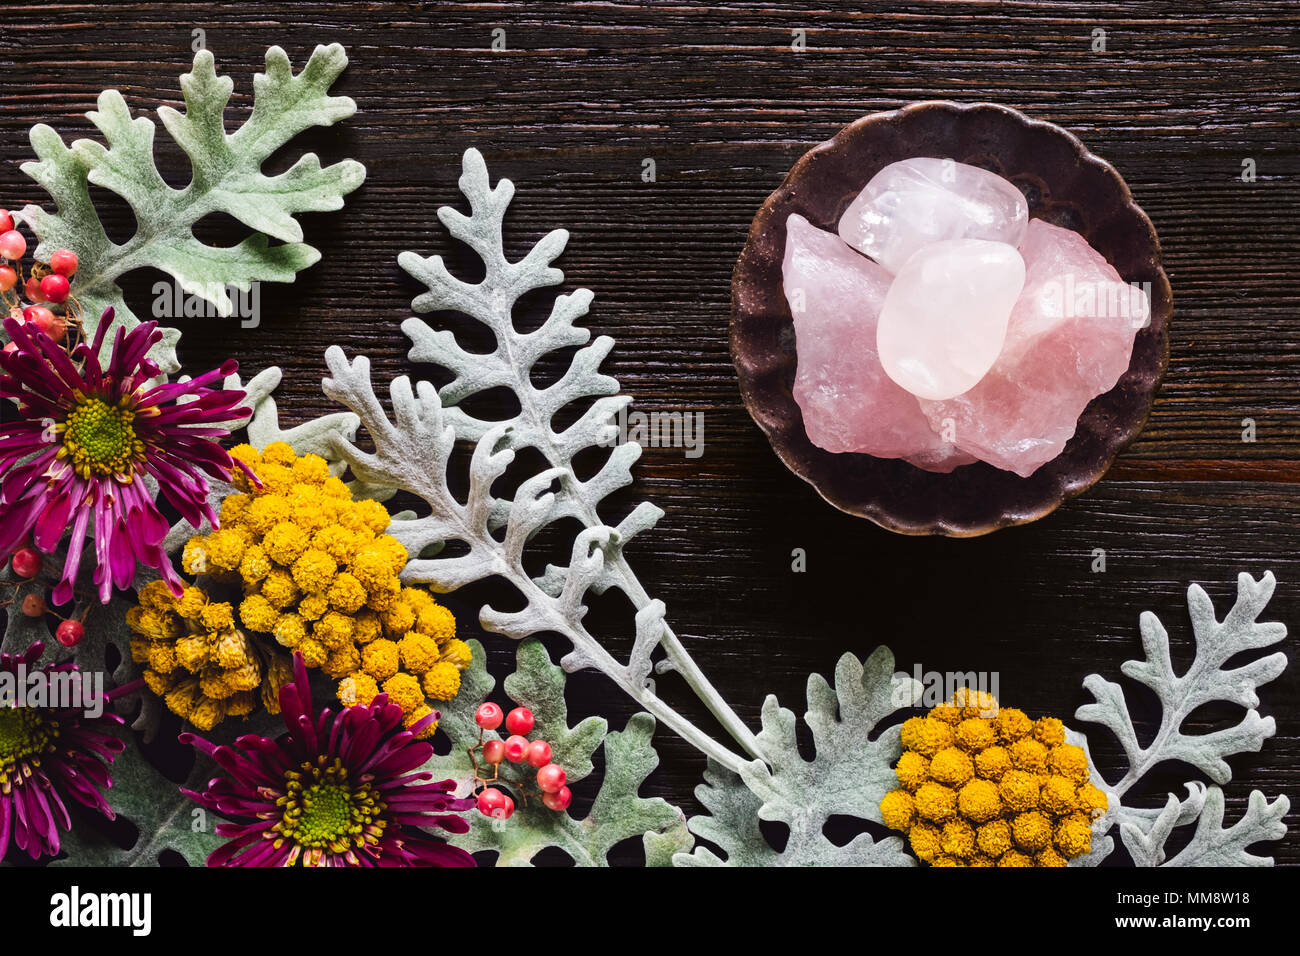 Rose Quartz Crystals with Dusty Miller, Clustered Everlasting and Chrysanthemums on Dark Table with Space for Copy - Stock Image